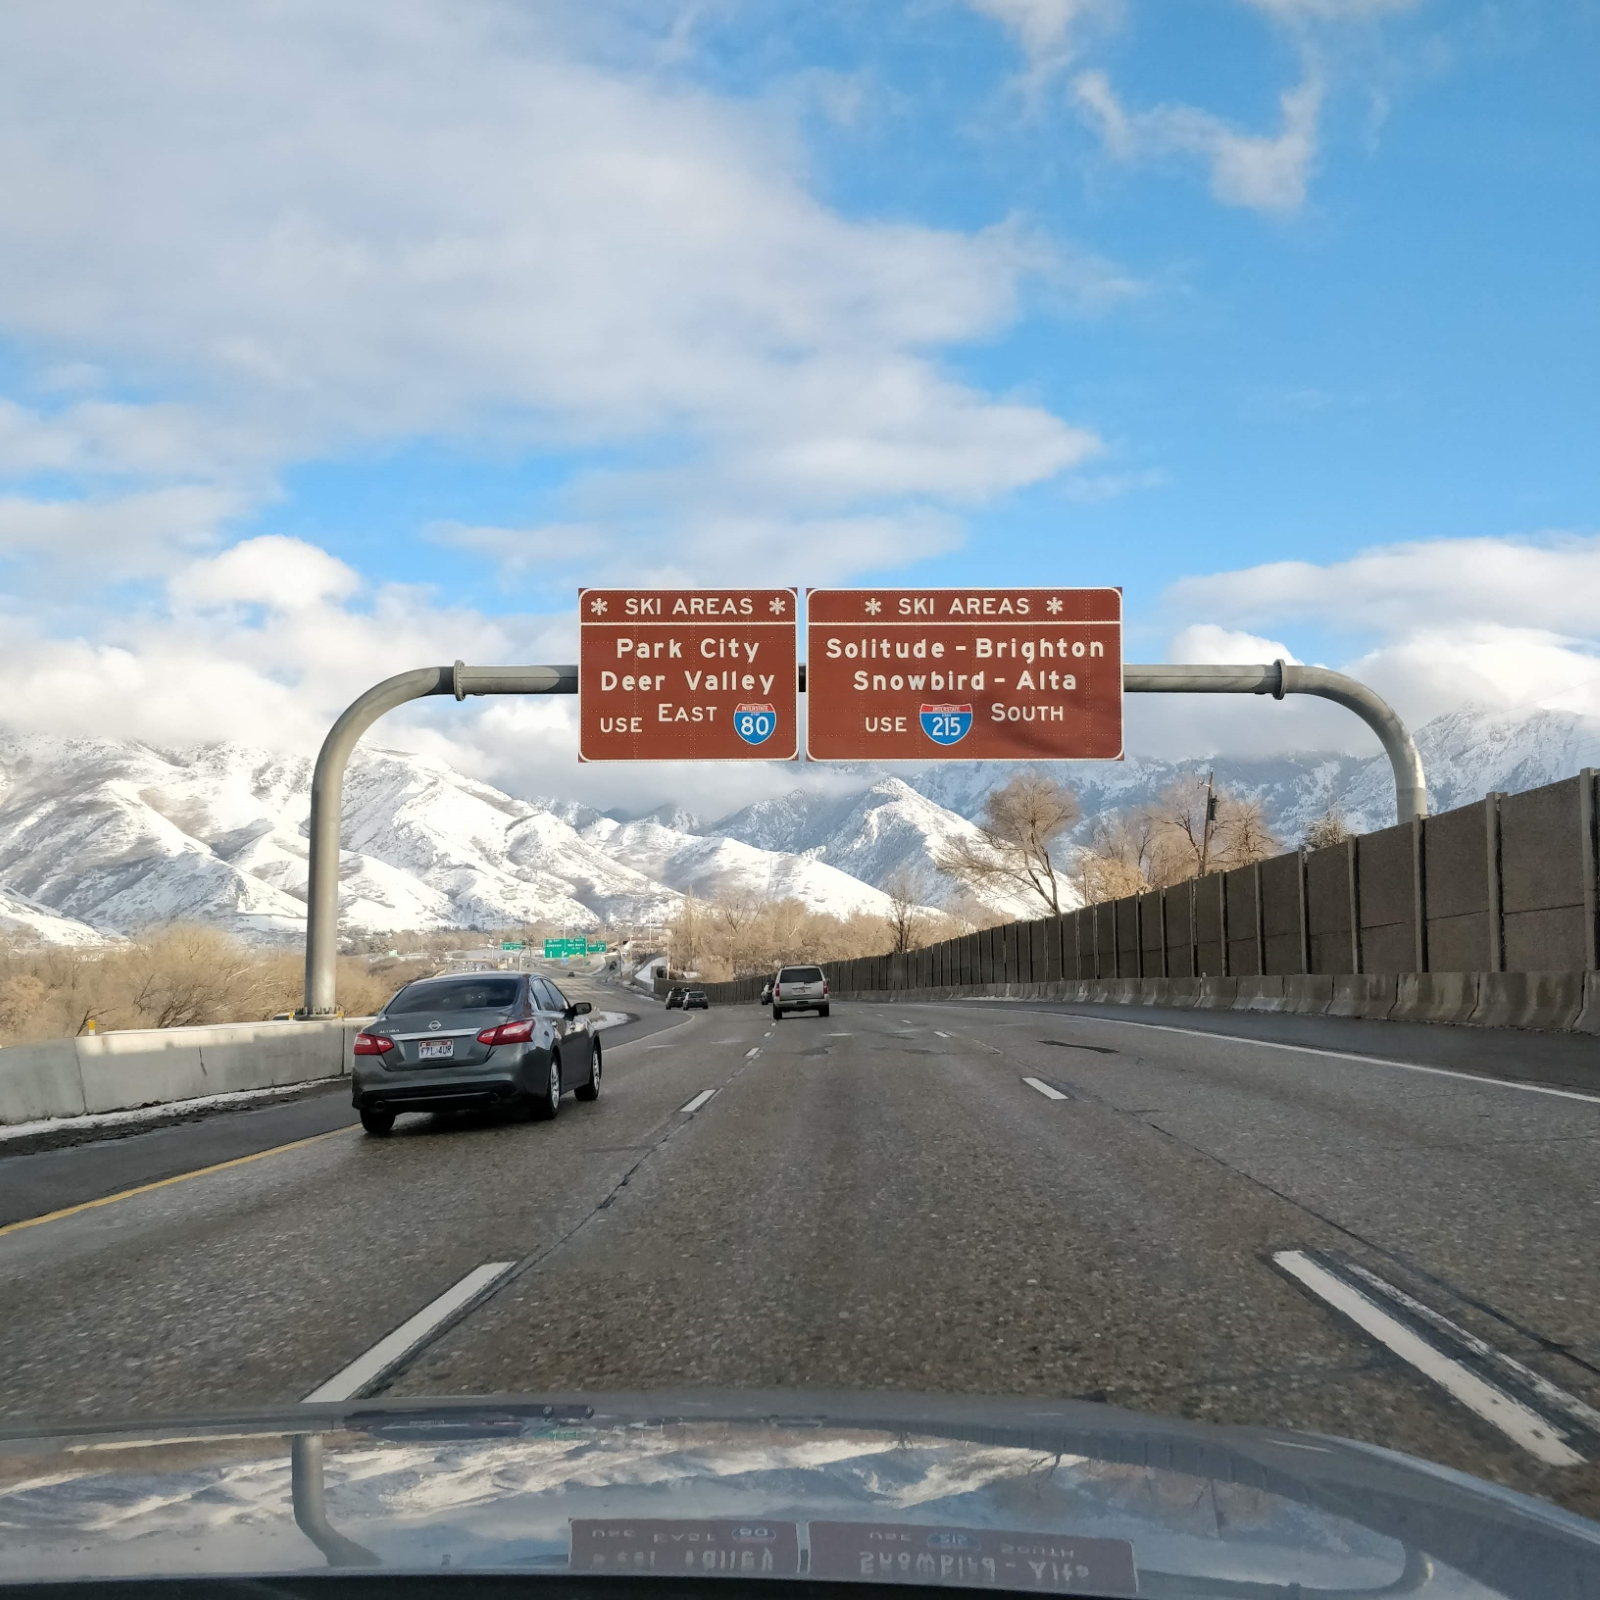 The highway to Utah ski resorts, with directional signs to each one, and tall mountains in the background